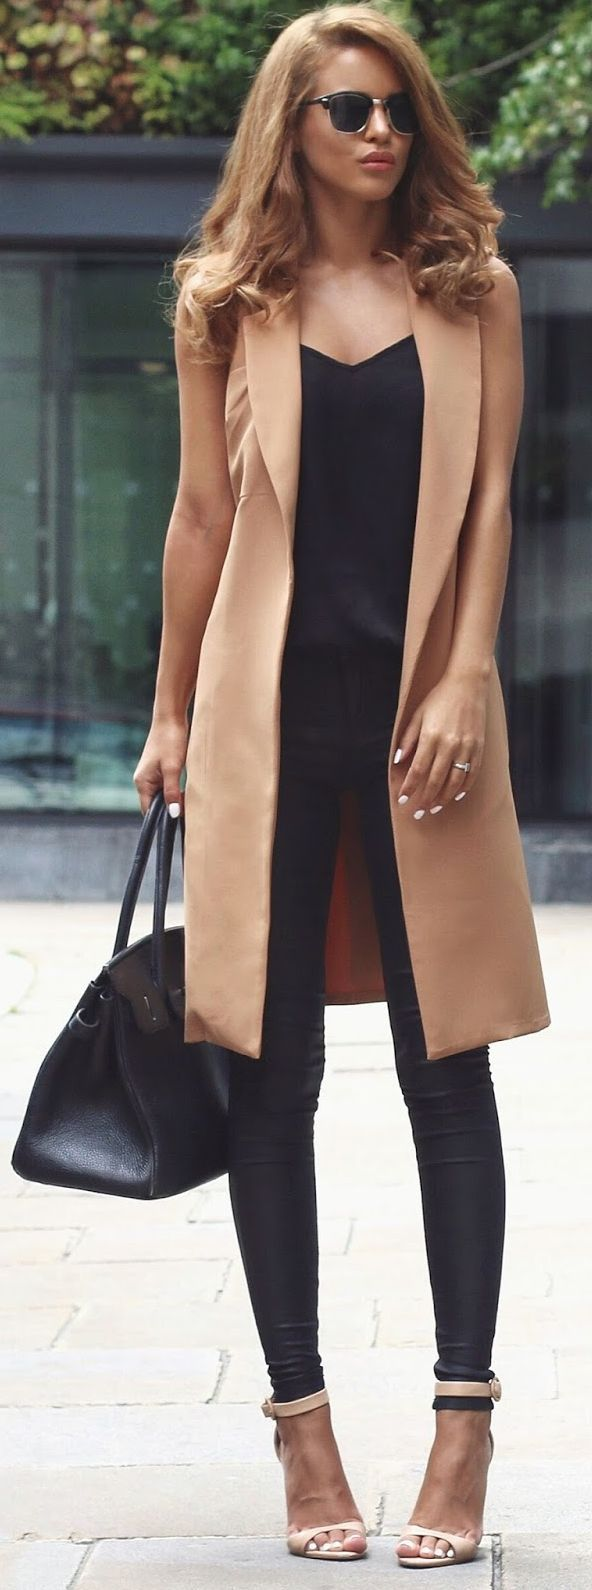 Nude On Black Casual Chic Outfit Idea by Nada Adellè: